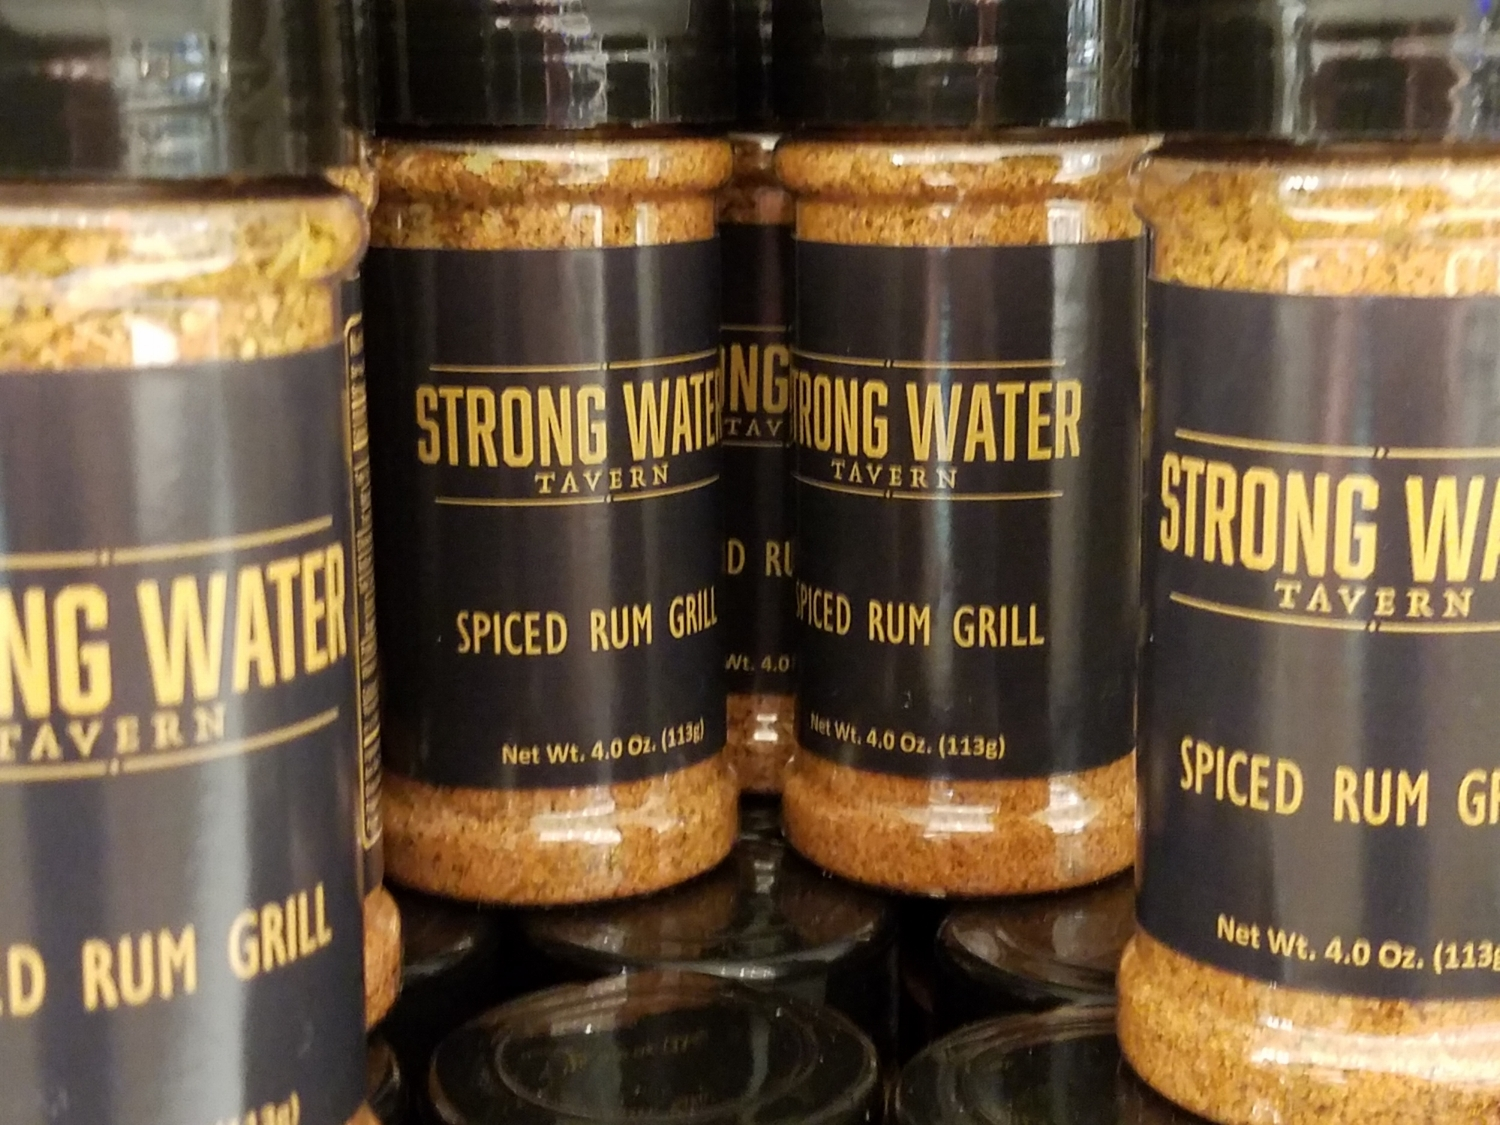 Strong Water Tavern Spiced Rum Grill Seasoning Available at New Dutch Trading Co.